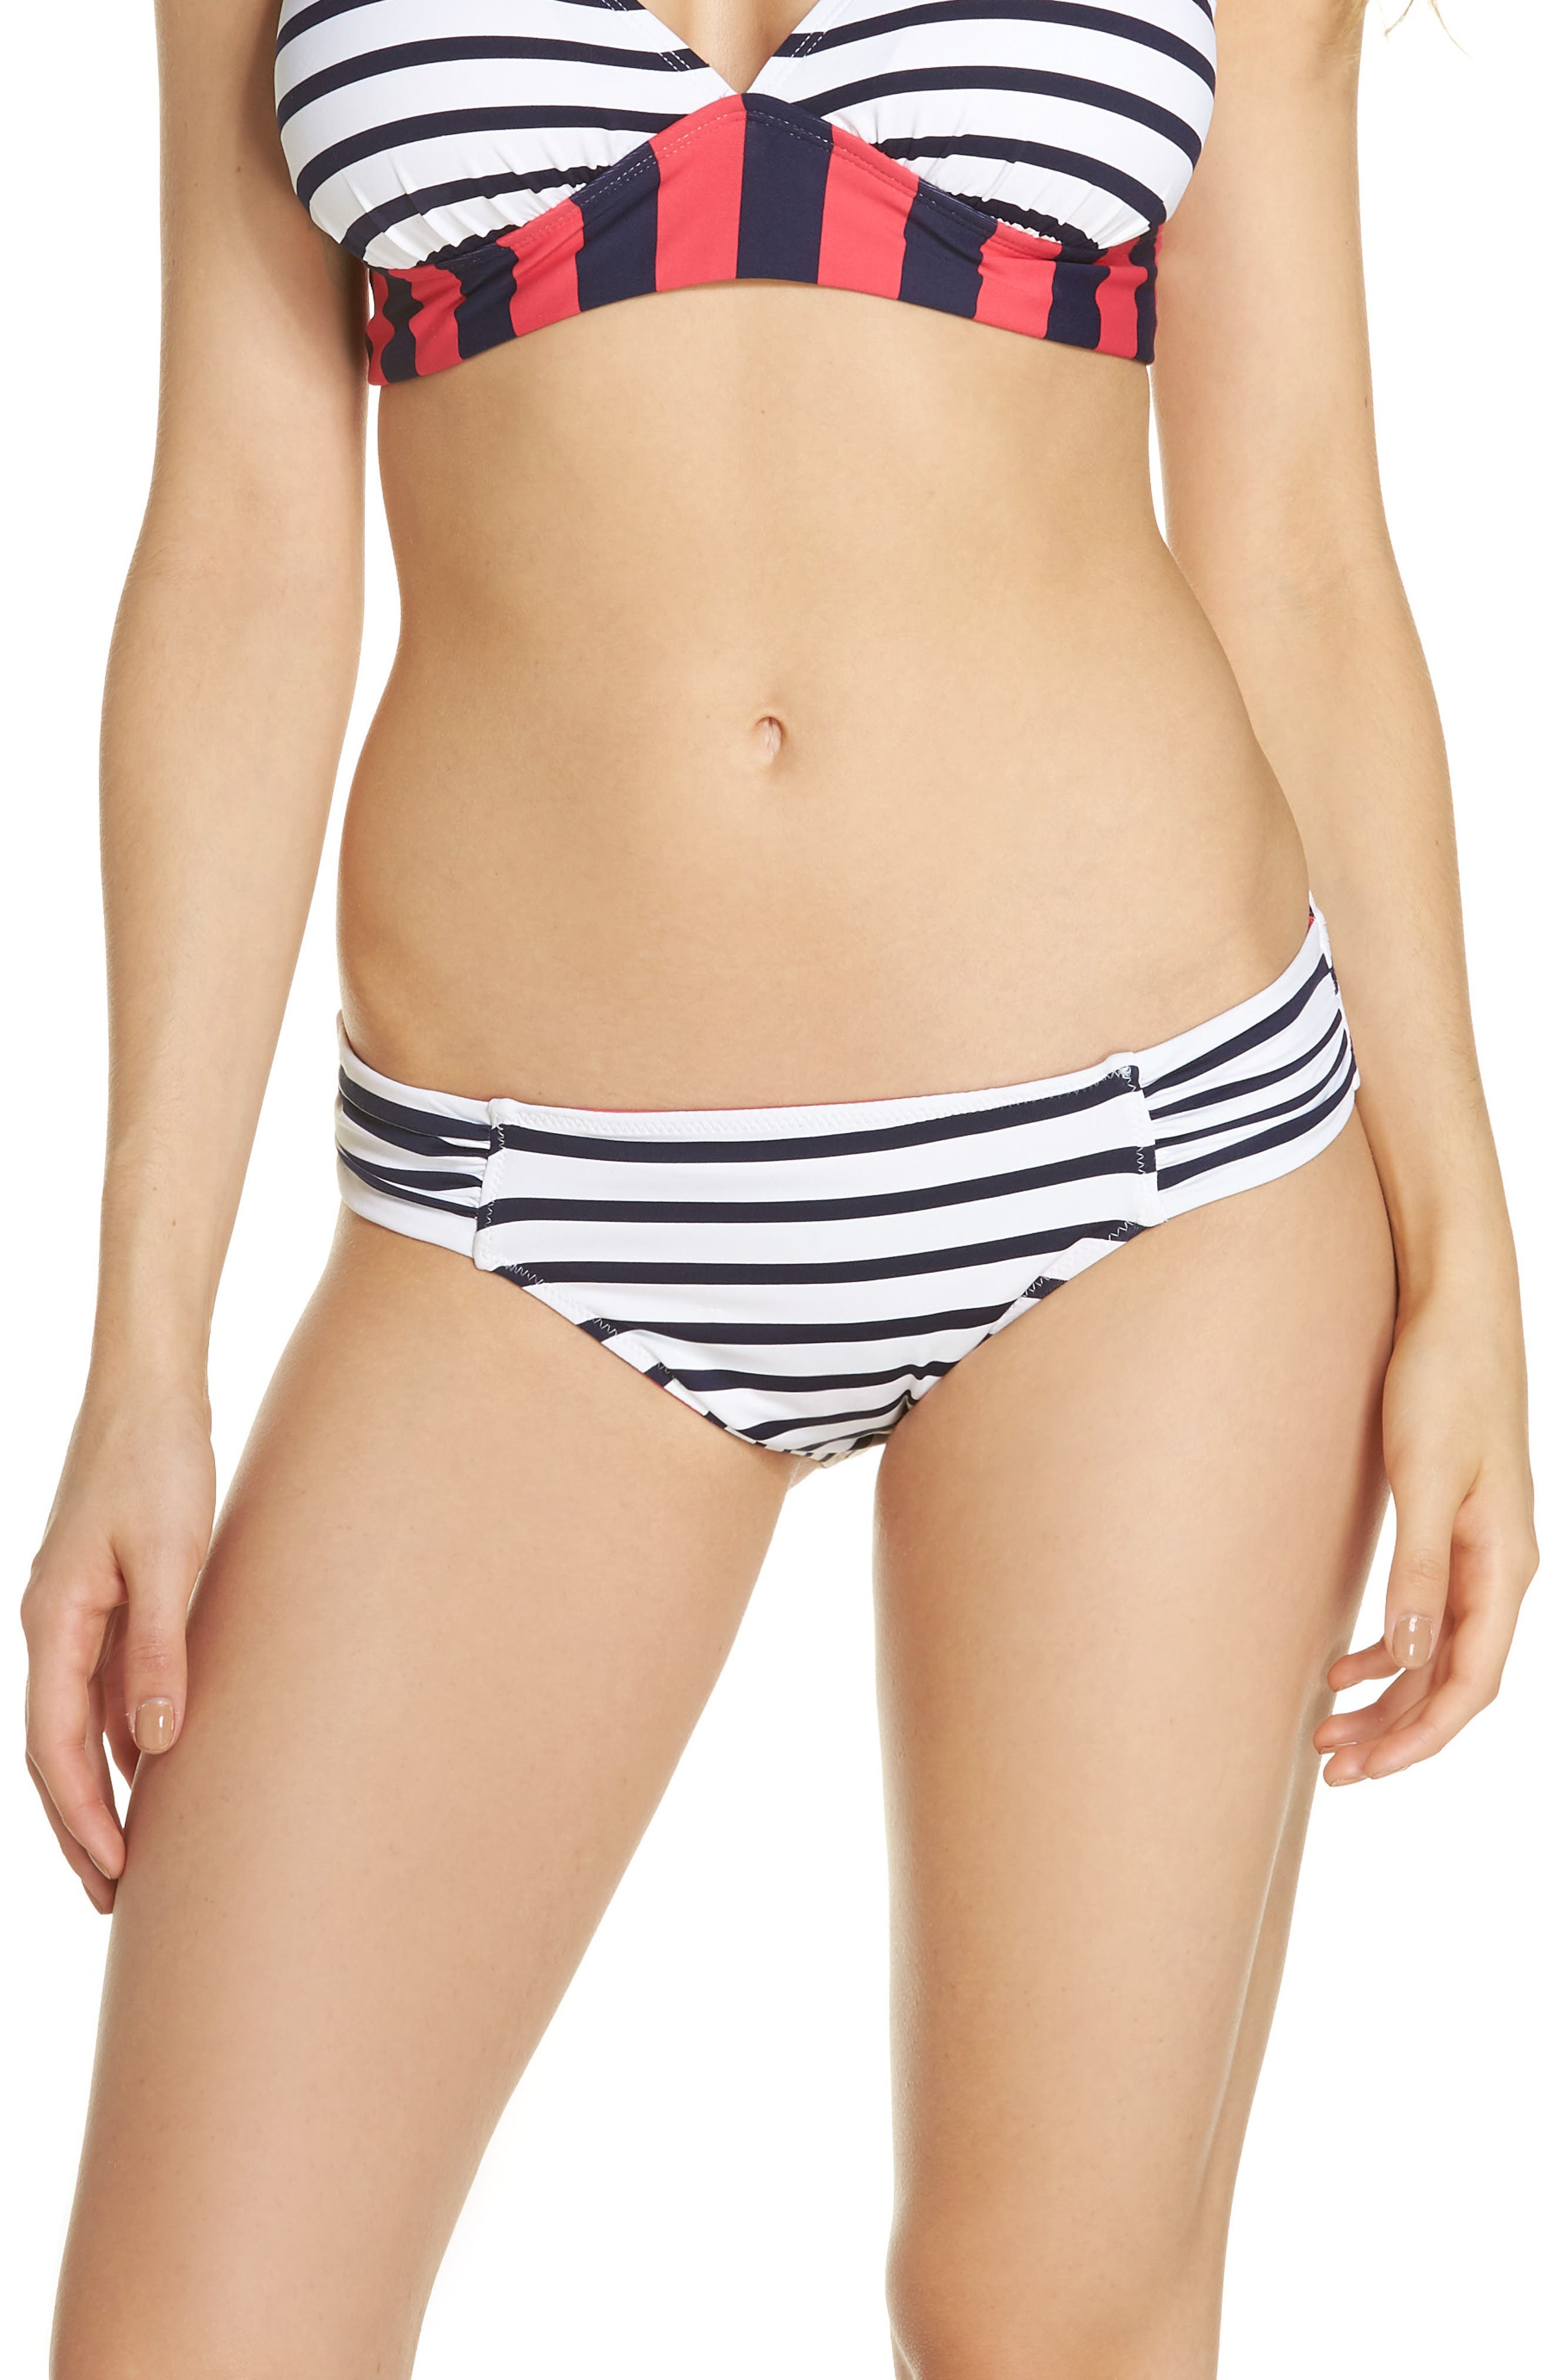 Channel Surfing Reversible Hipster Bikini Bottoms,                             Main thumbnail 1, color,                             Mare Blue